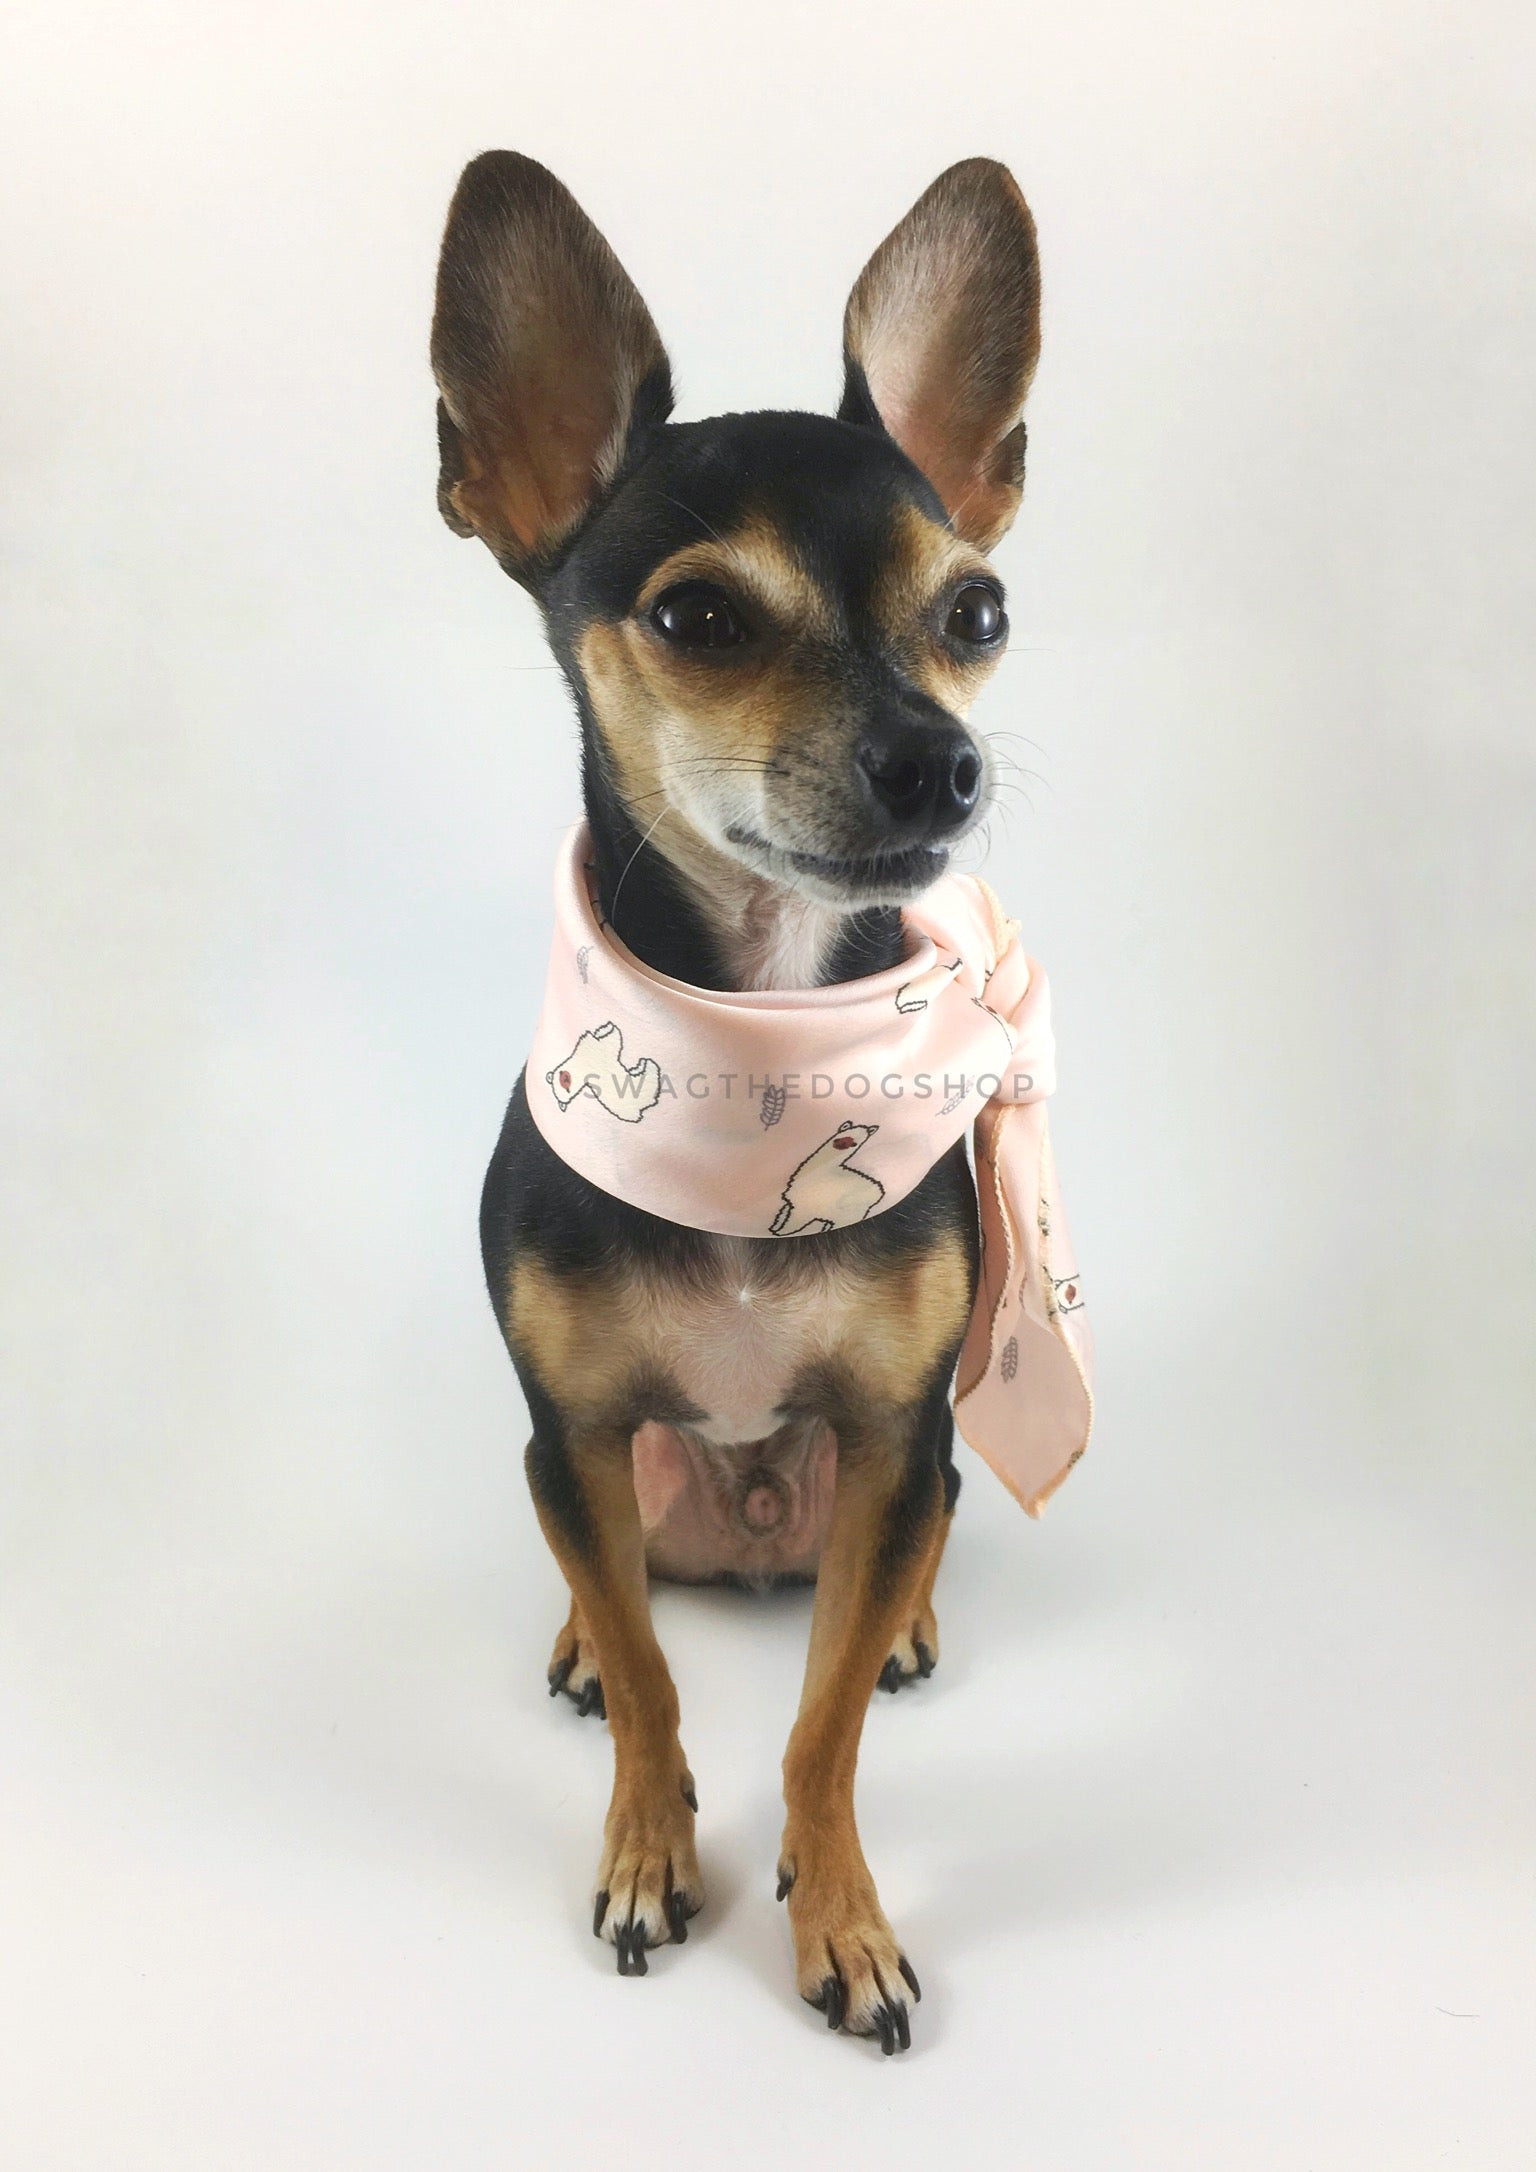 Lorenzo Llama Soft Pink Swagdana Scarf - Full Front View of Cute Chihuahua Wearing Swagdana Scarf as Neckerchief. Dog Bandana. Dog Scarf.